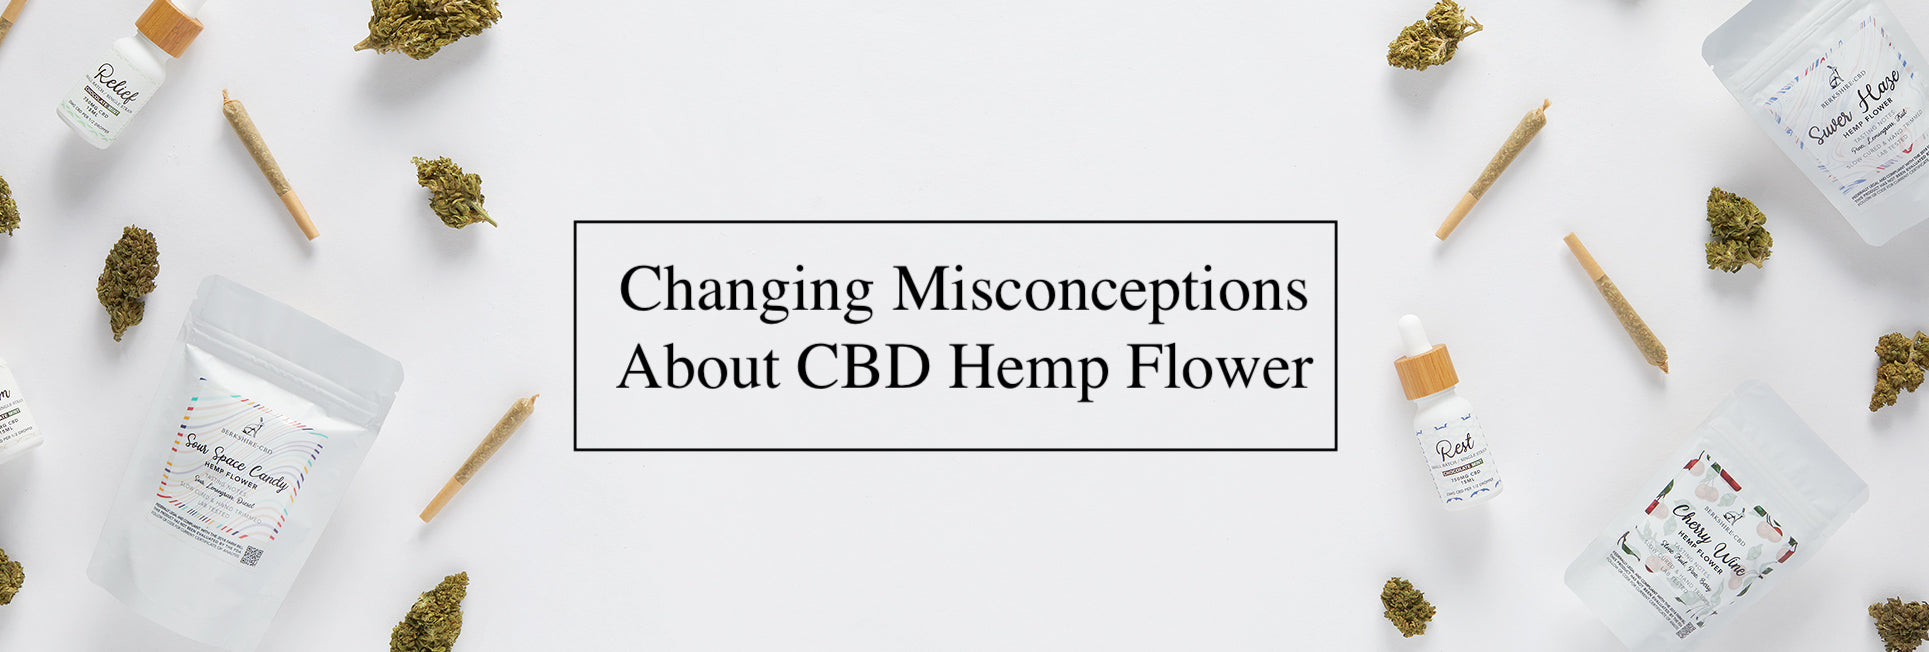 Changing Misconceptions About CBD Hemp Flower